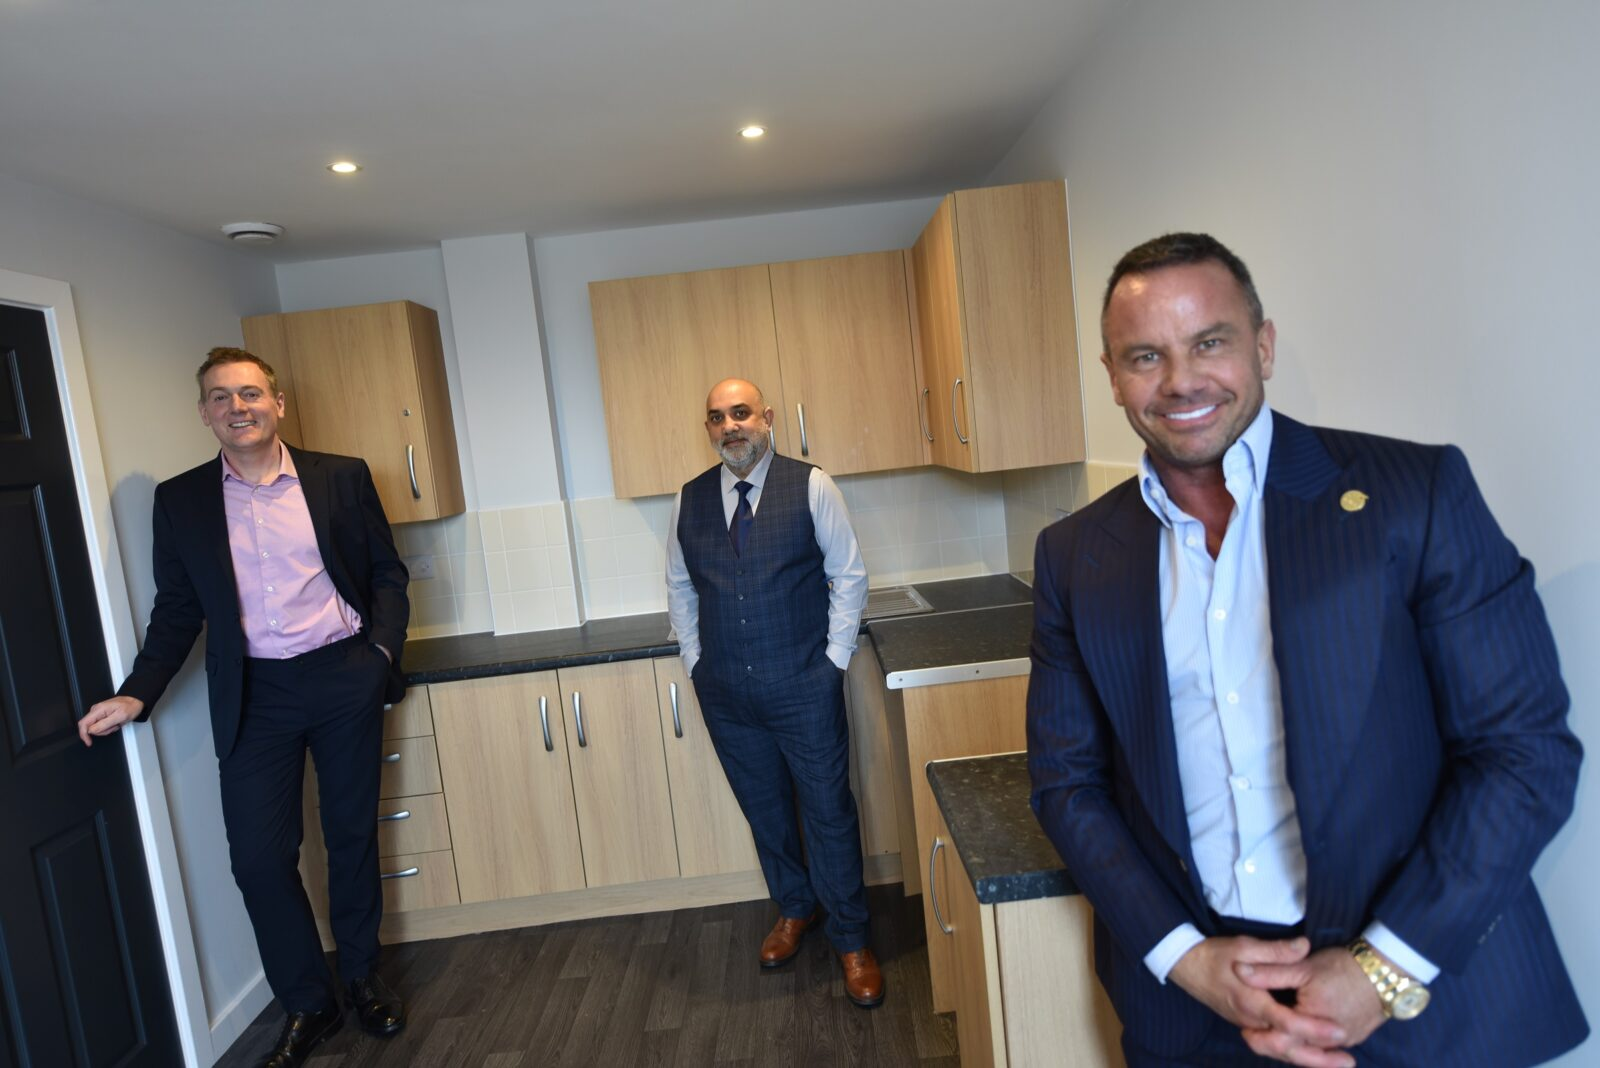 Global hospitality business expands into Middlesbrough